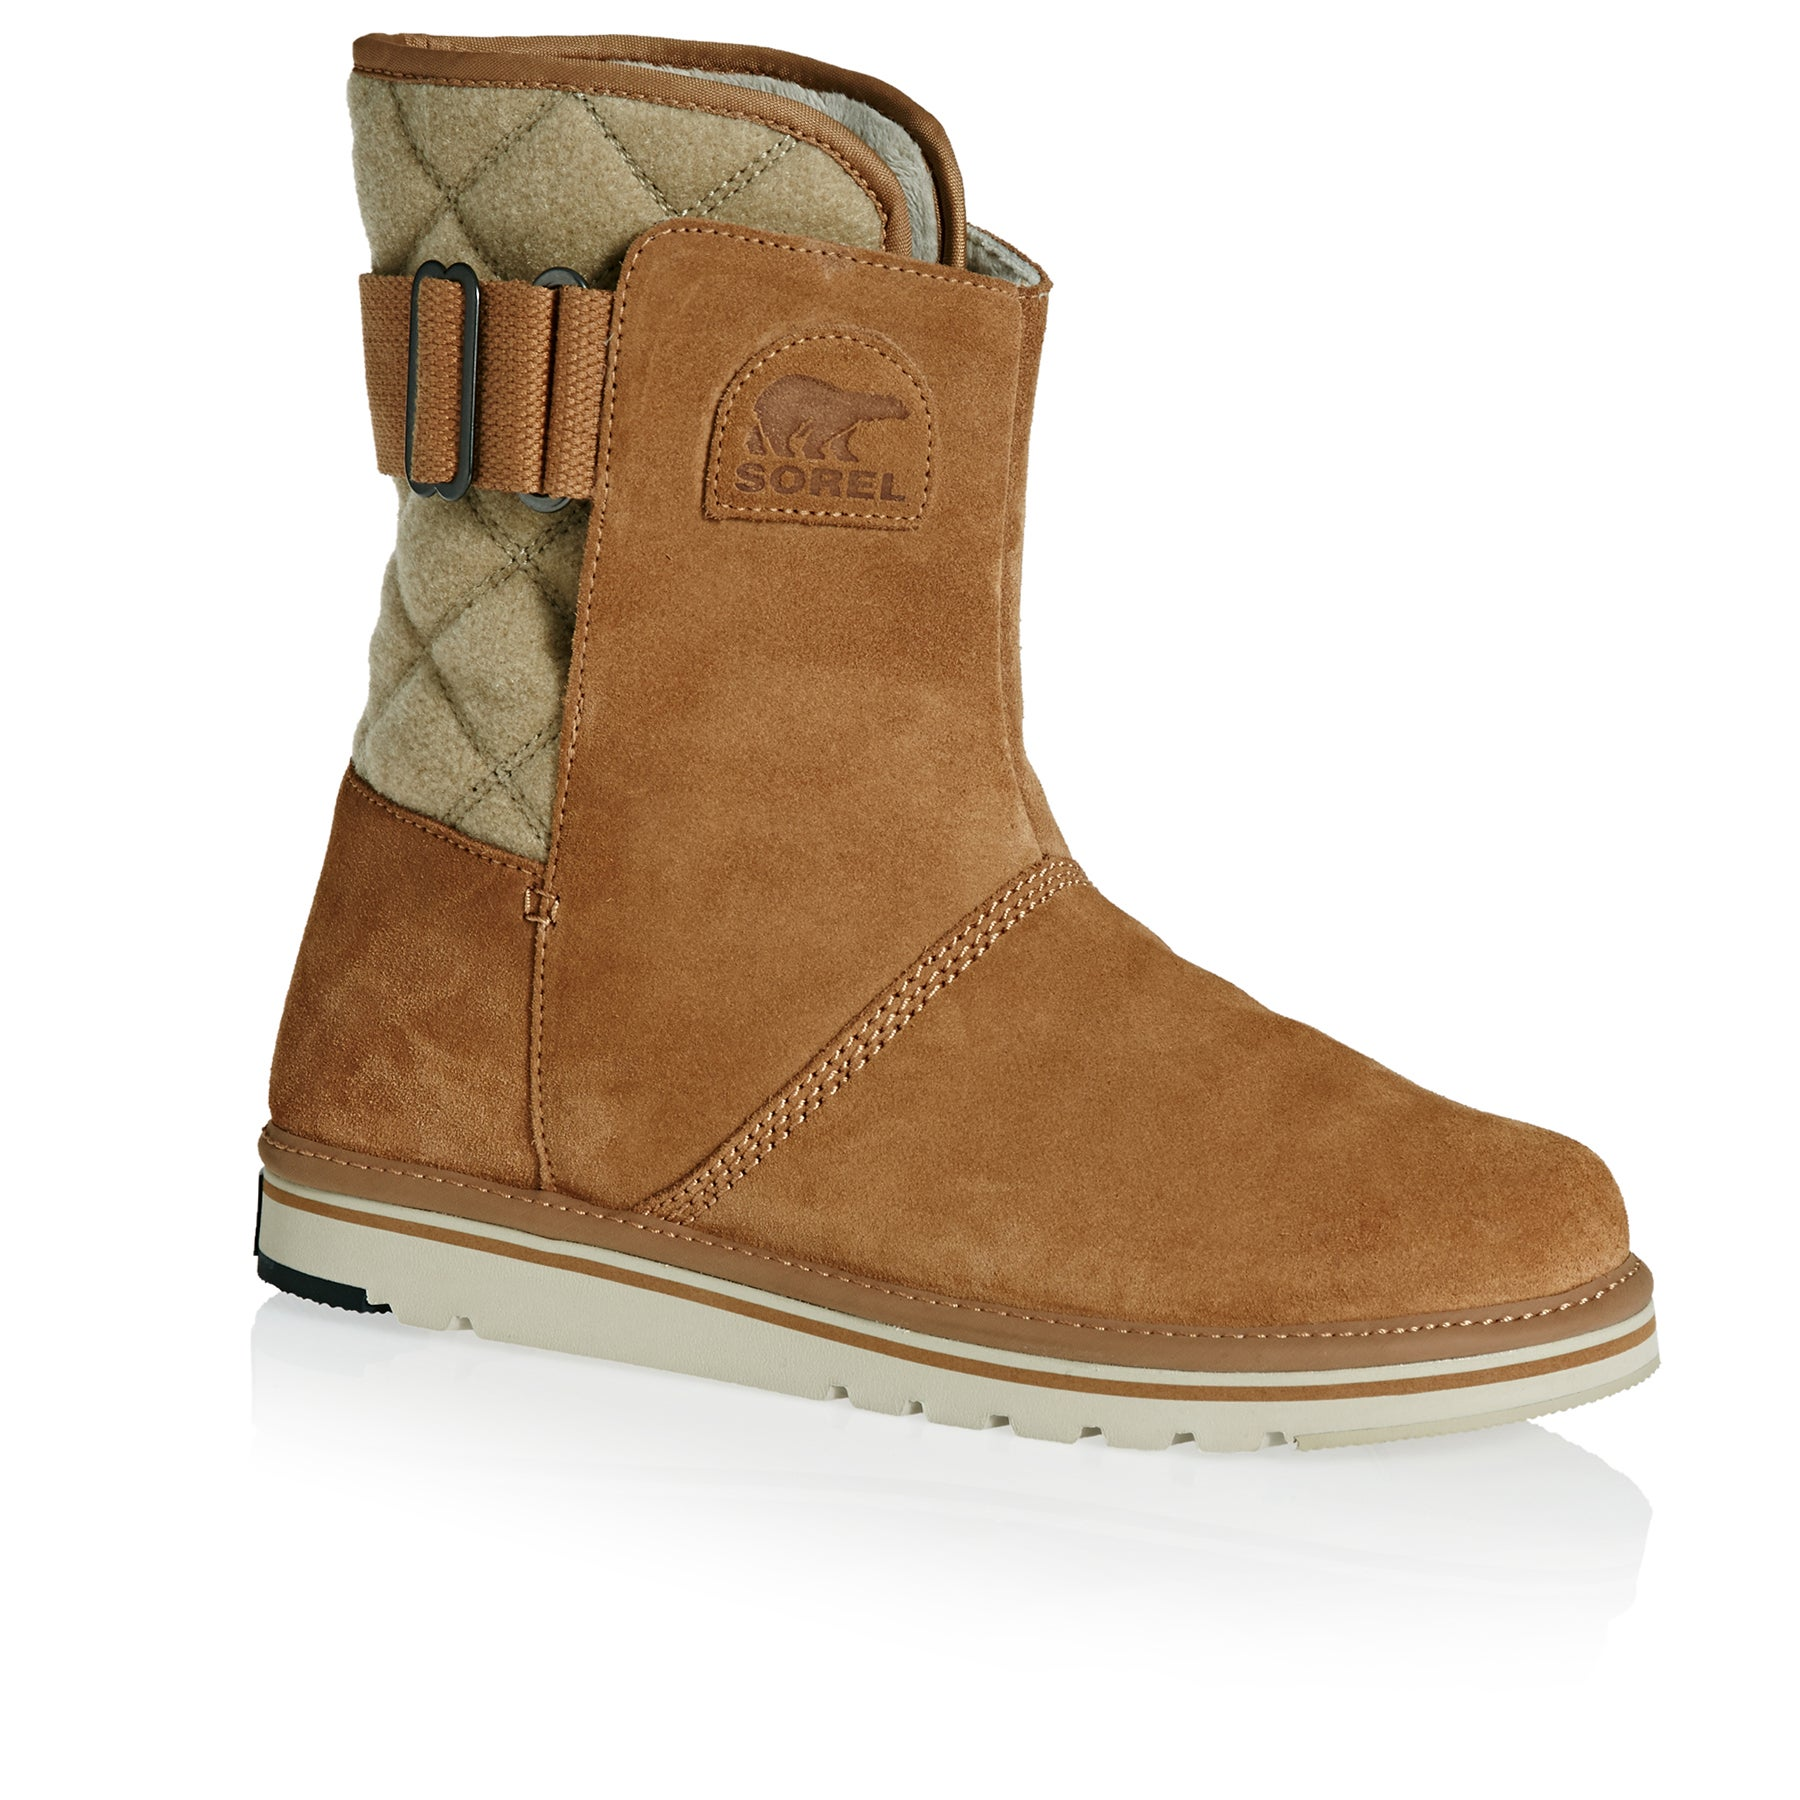 Sorel Newbie Short Womens Boots - Elk British Tan